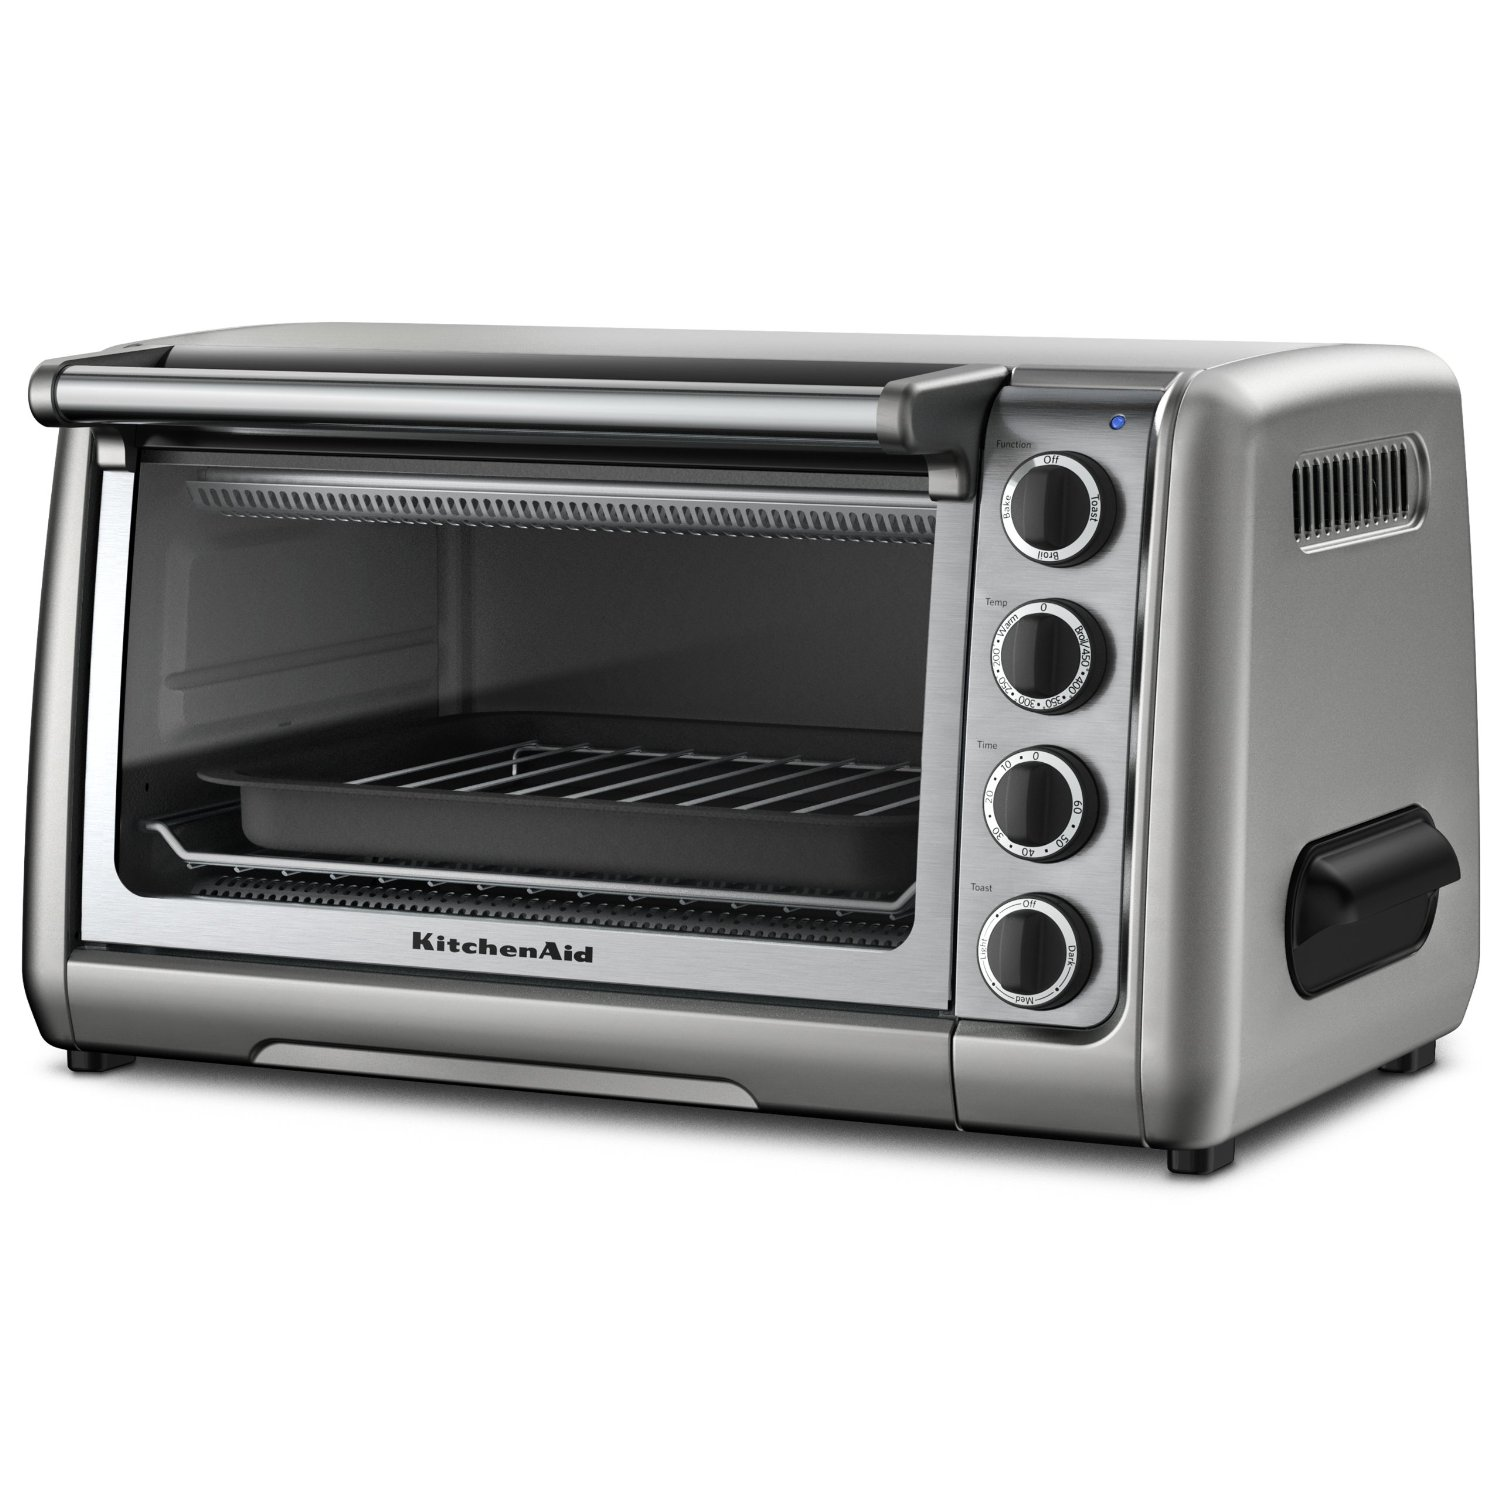 Countertop Toaster Oven : KitchenAid Toaster Oven only $54.99 (reg $120)